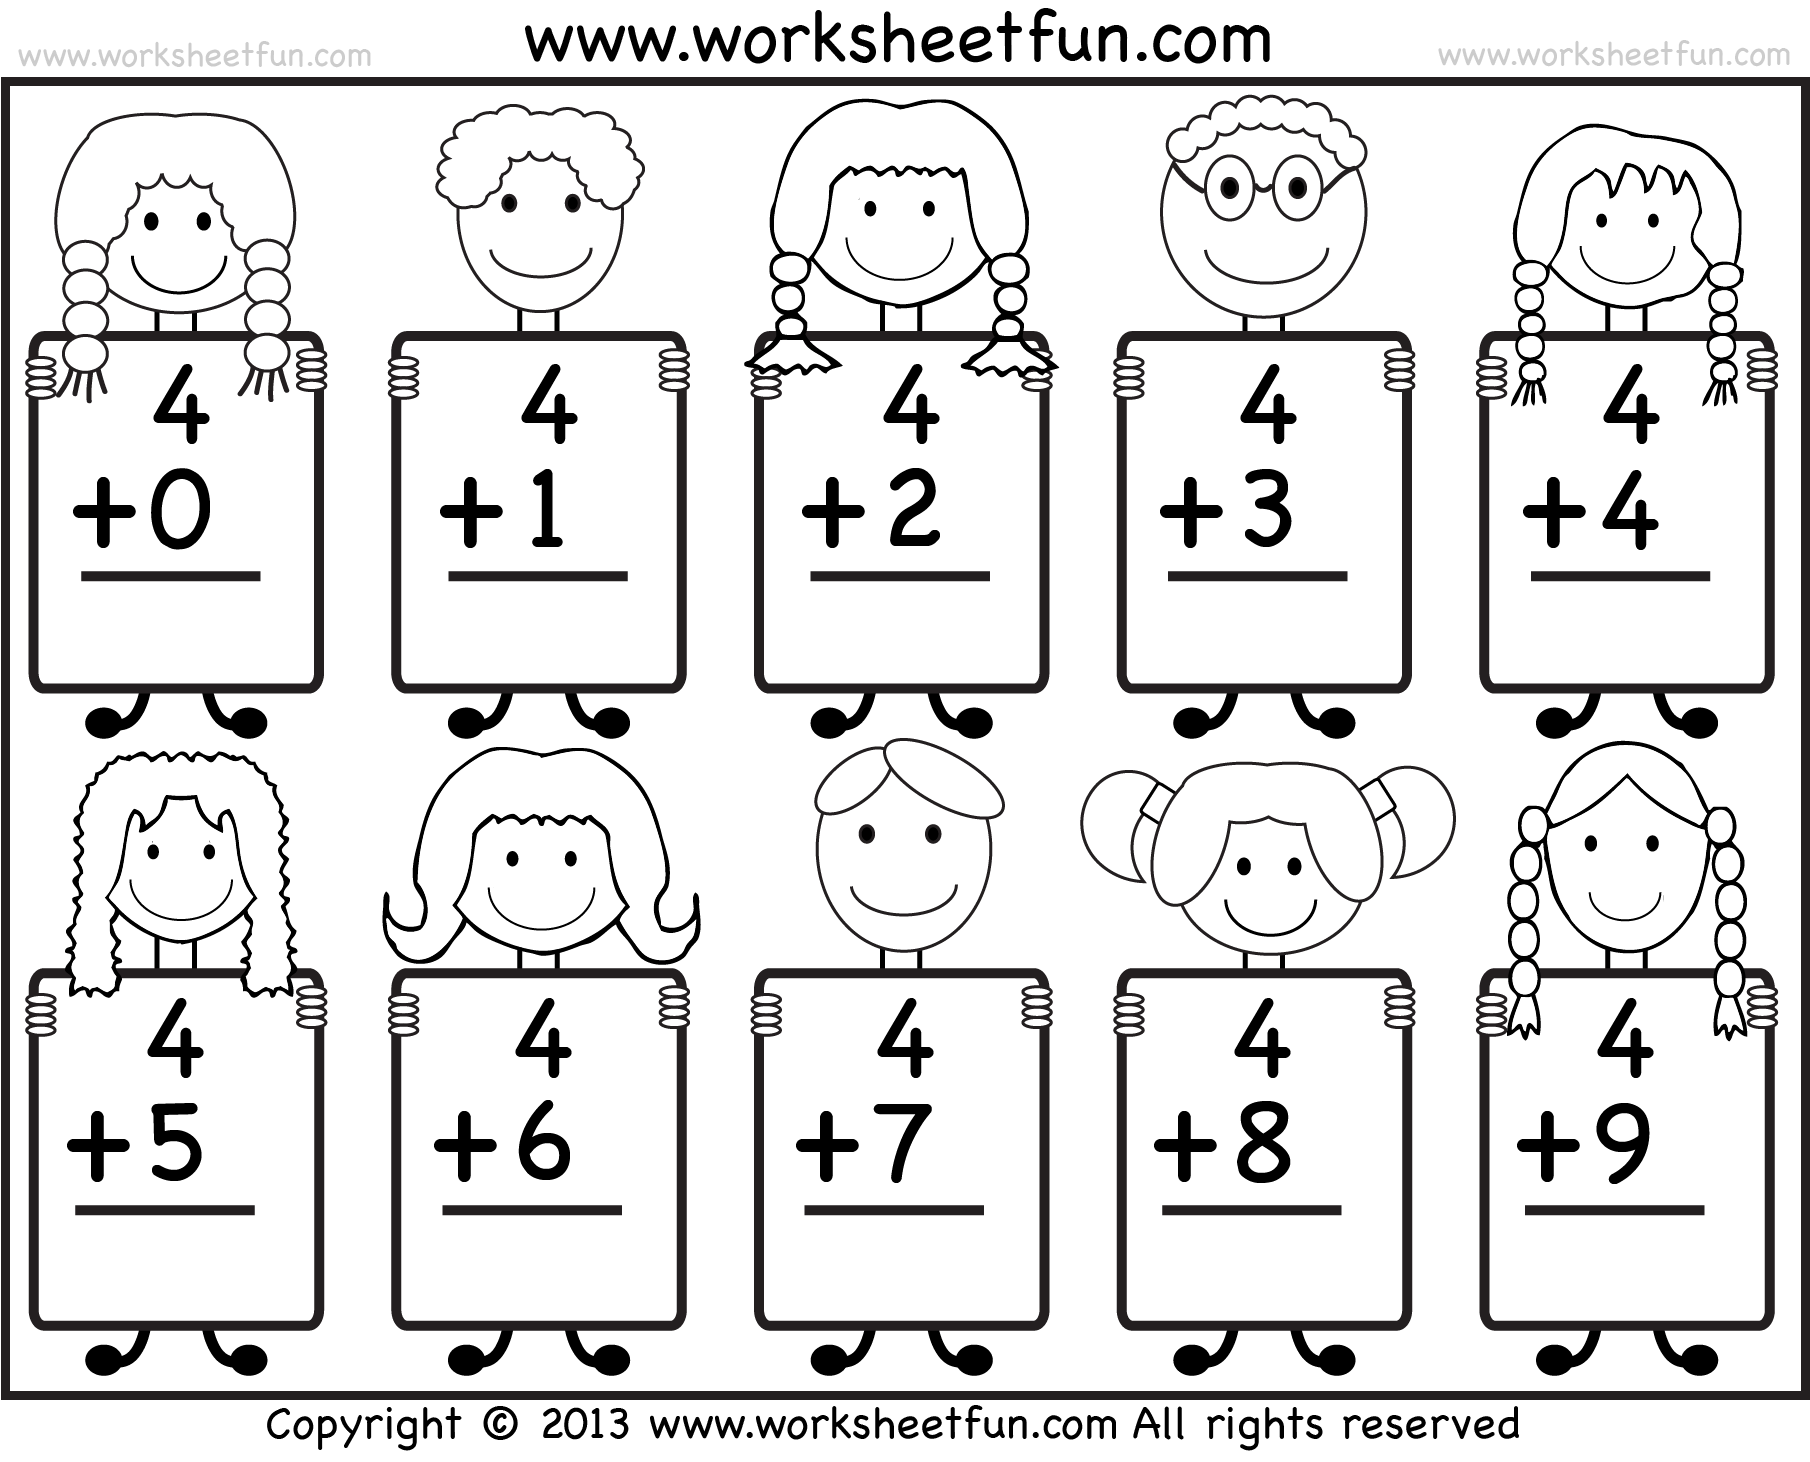 Worksheet #8001035: Kindergarten Math Practice Worksheets – Math ...